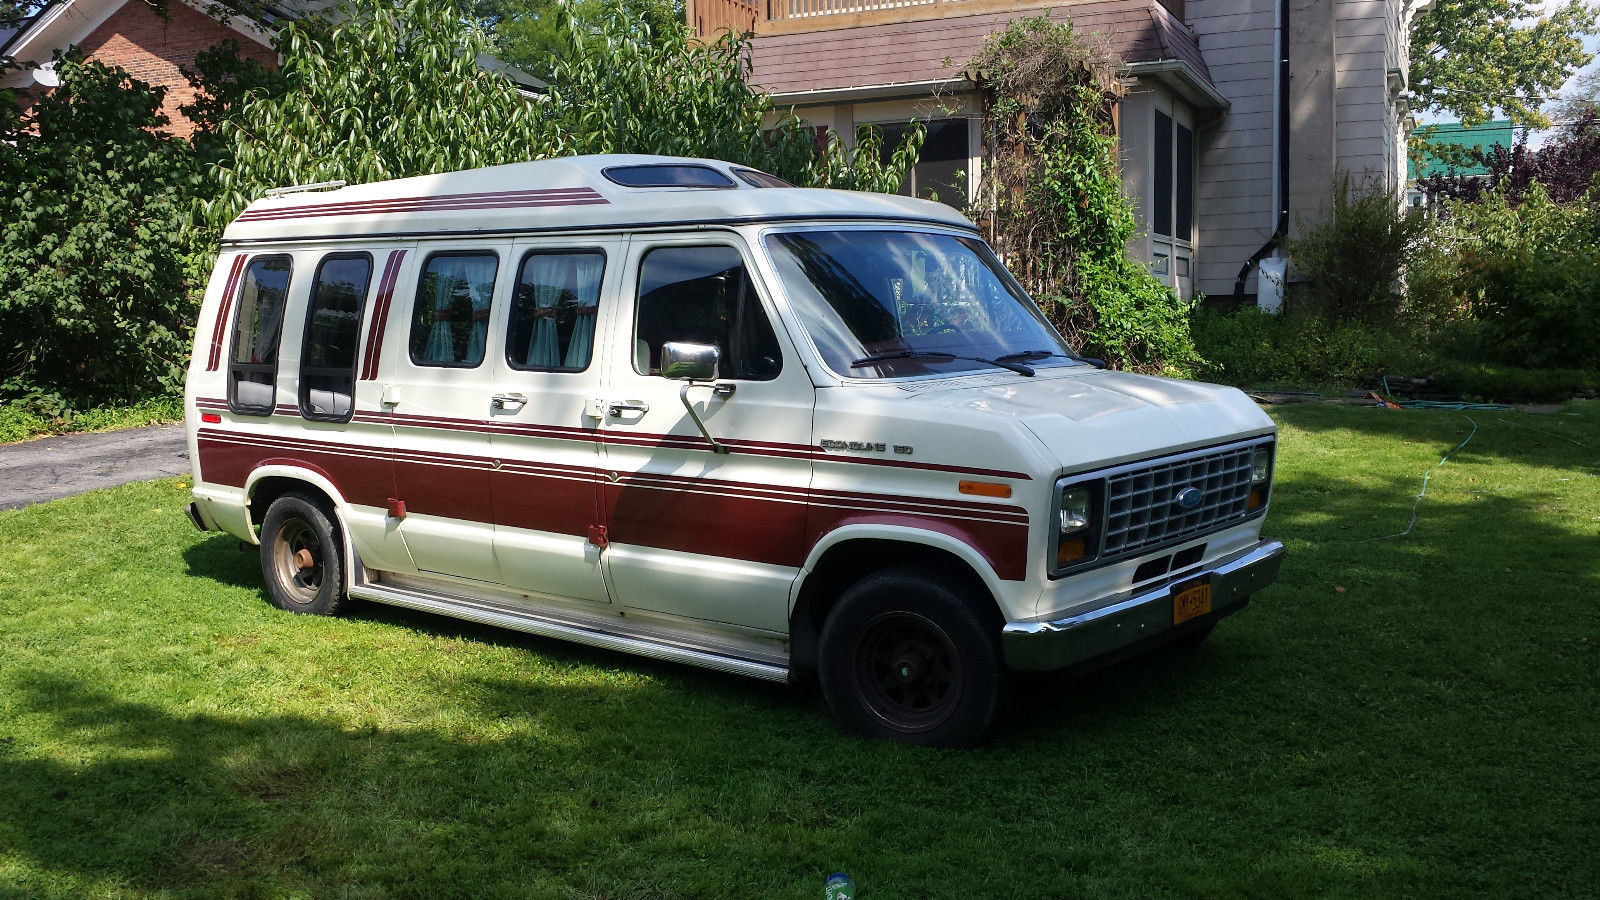 1985 Ford Econoline E 150 Conversion Van Low Miles Reserve For Sale In Locke New York United States